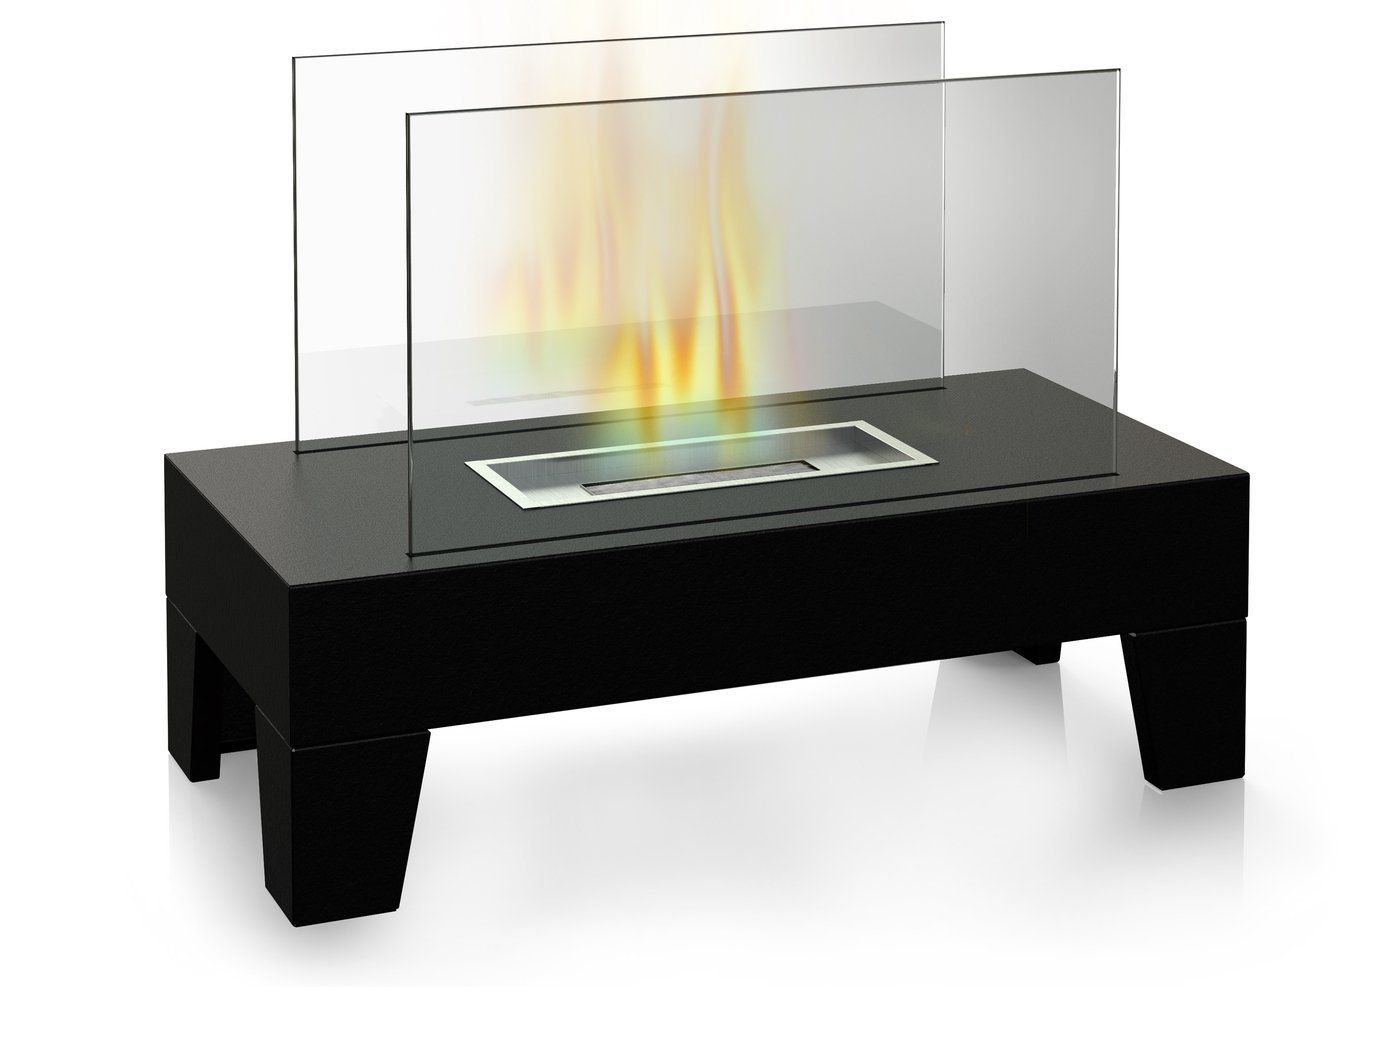 Table Top Bioethanol Heater Model Df 6510 A Compact Table Top Burner That Will Give A Special Touch To A Barbecue In Your Ga Fireplace Modern Fireplace Table